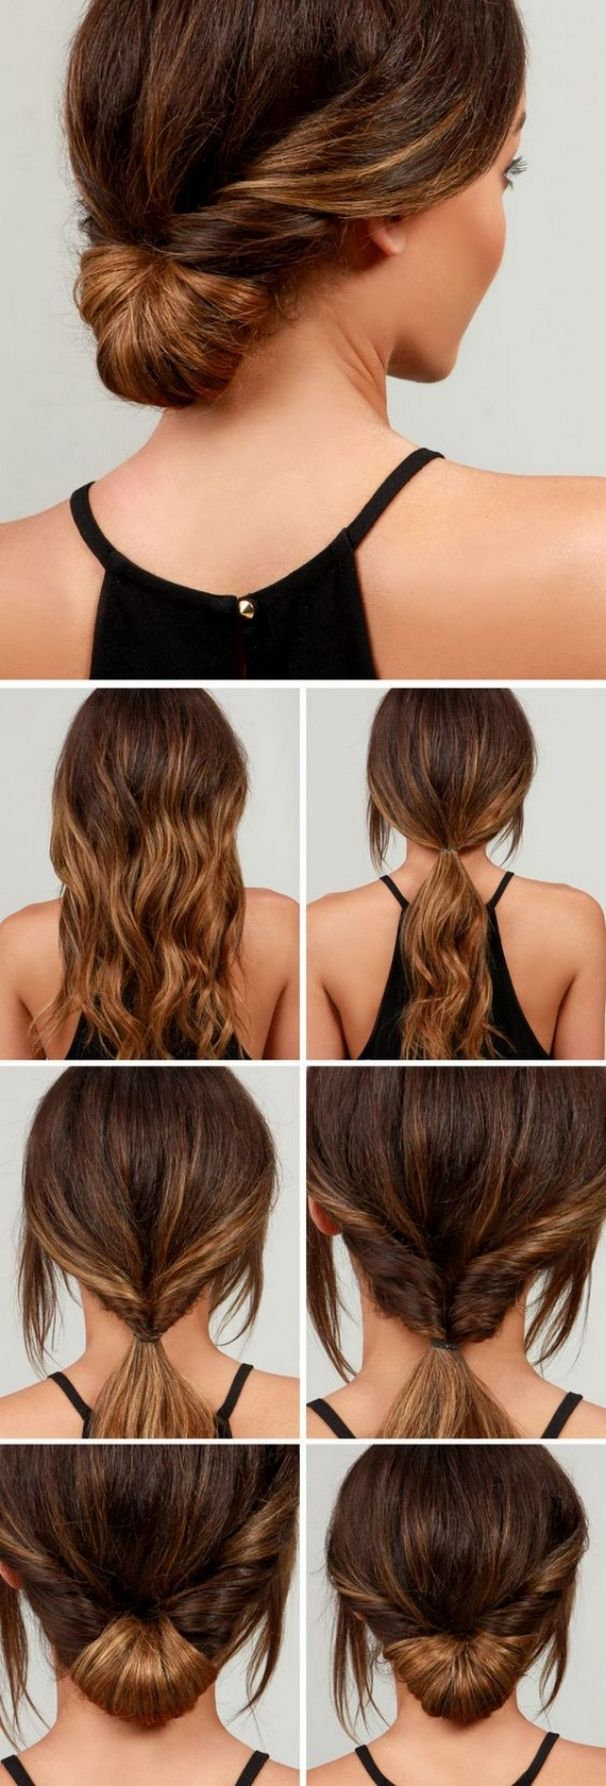 get 20+ easy summer hairstyles ideas on pinterest without signing